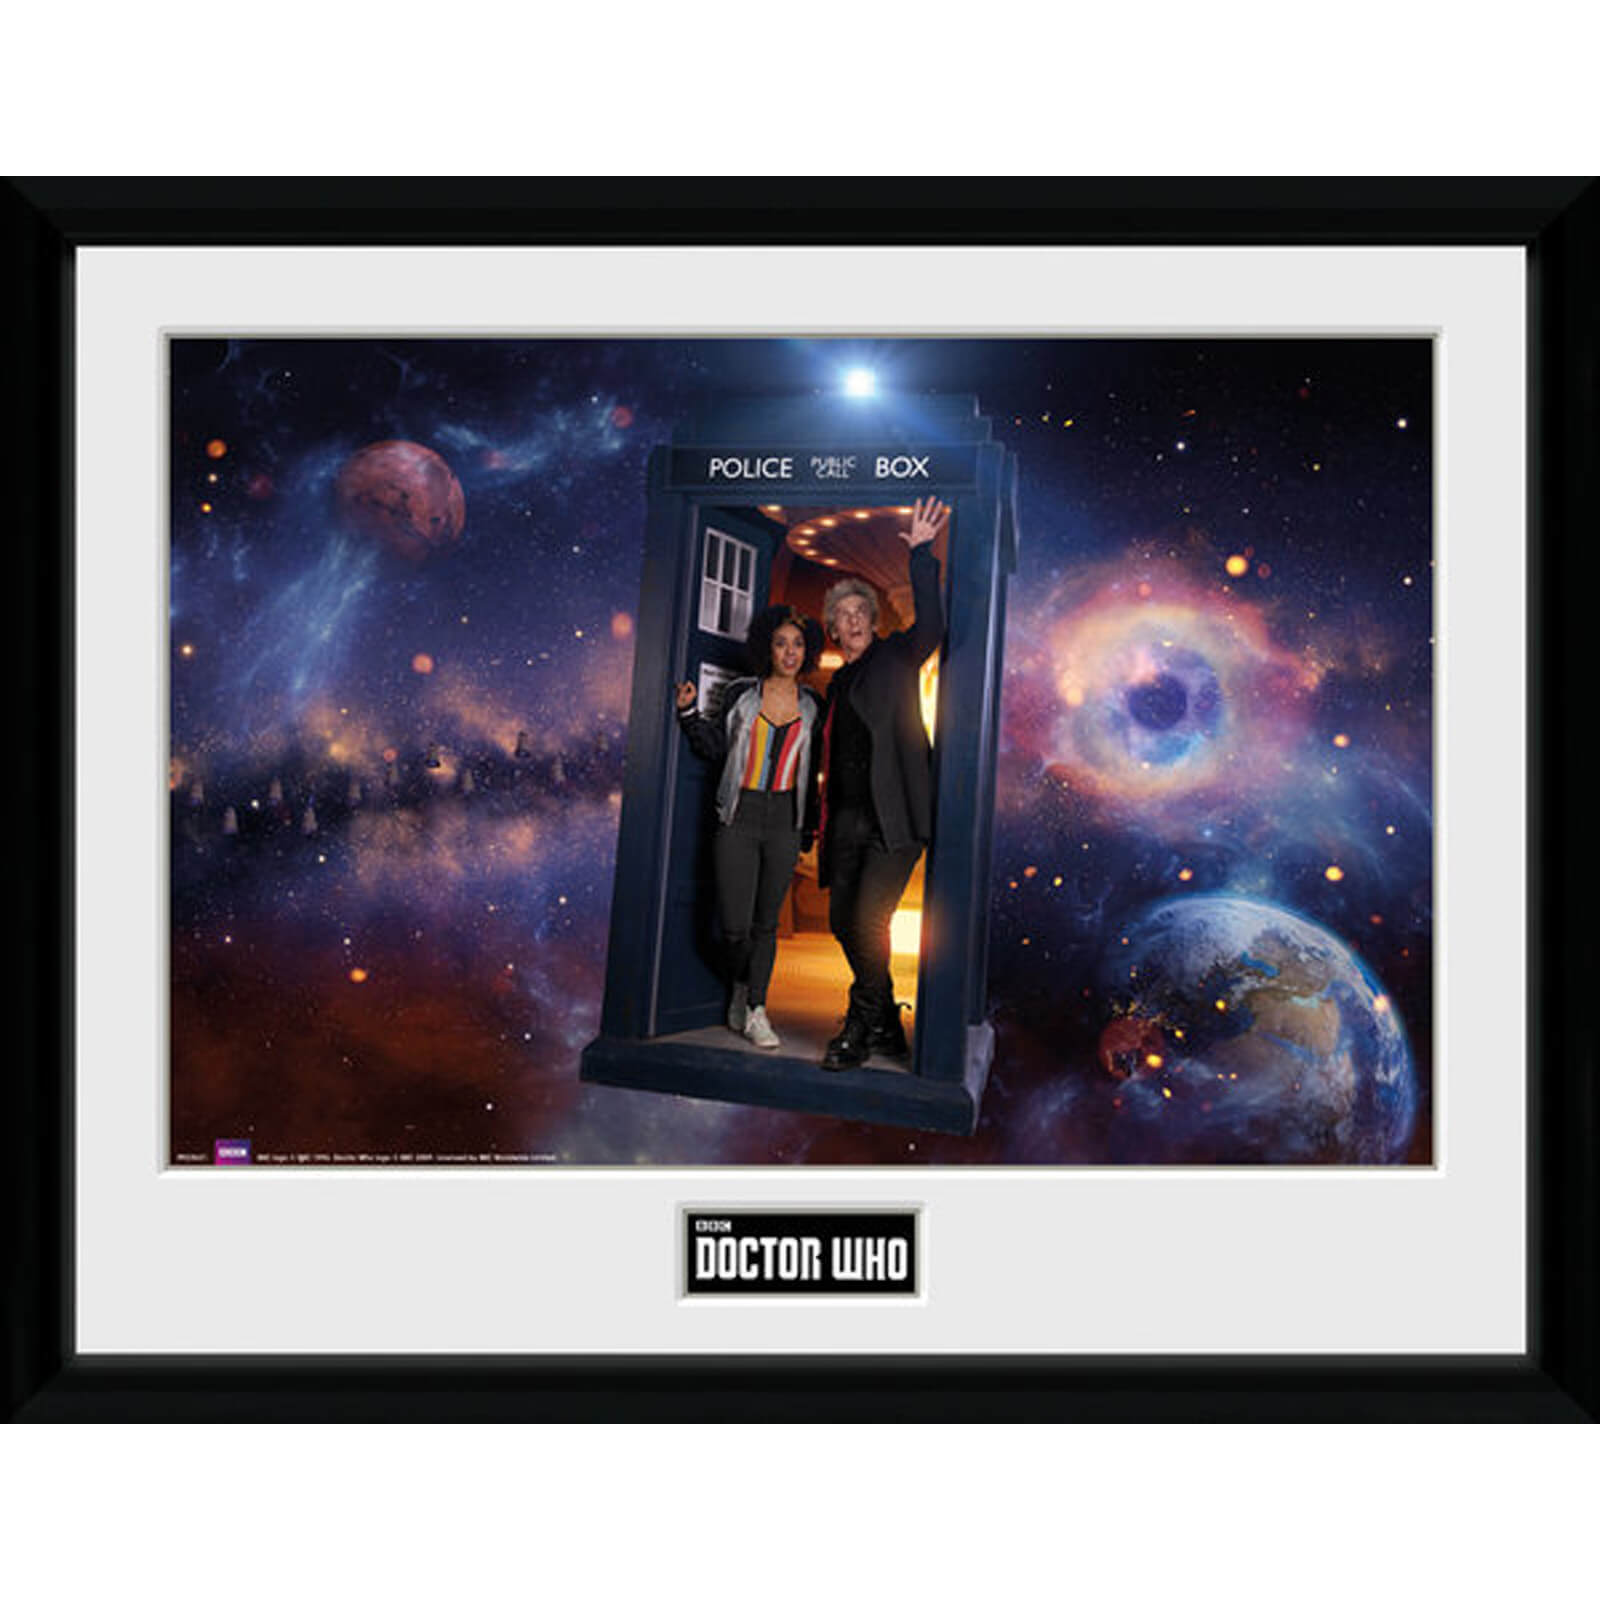 Doctor Who - Season 10: Episode 1 Iconic 12 x 16 Inches Framed Photograph